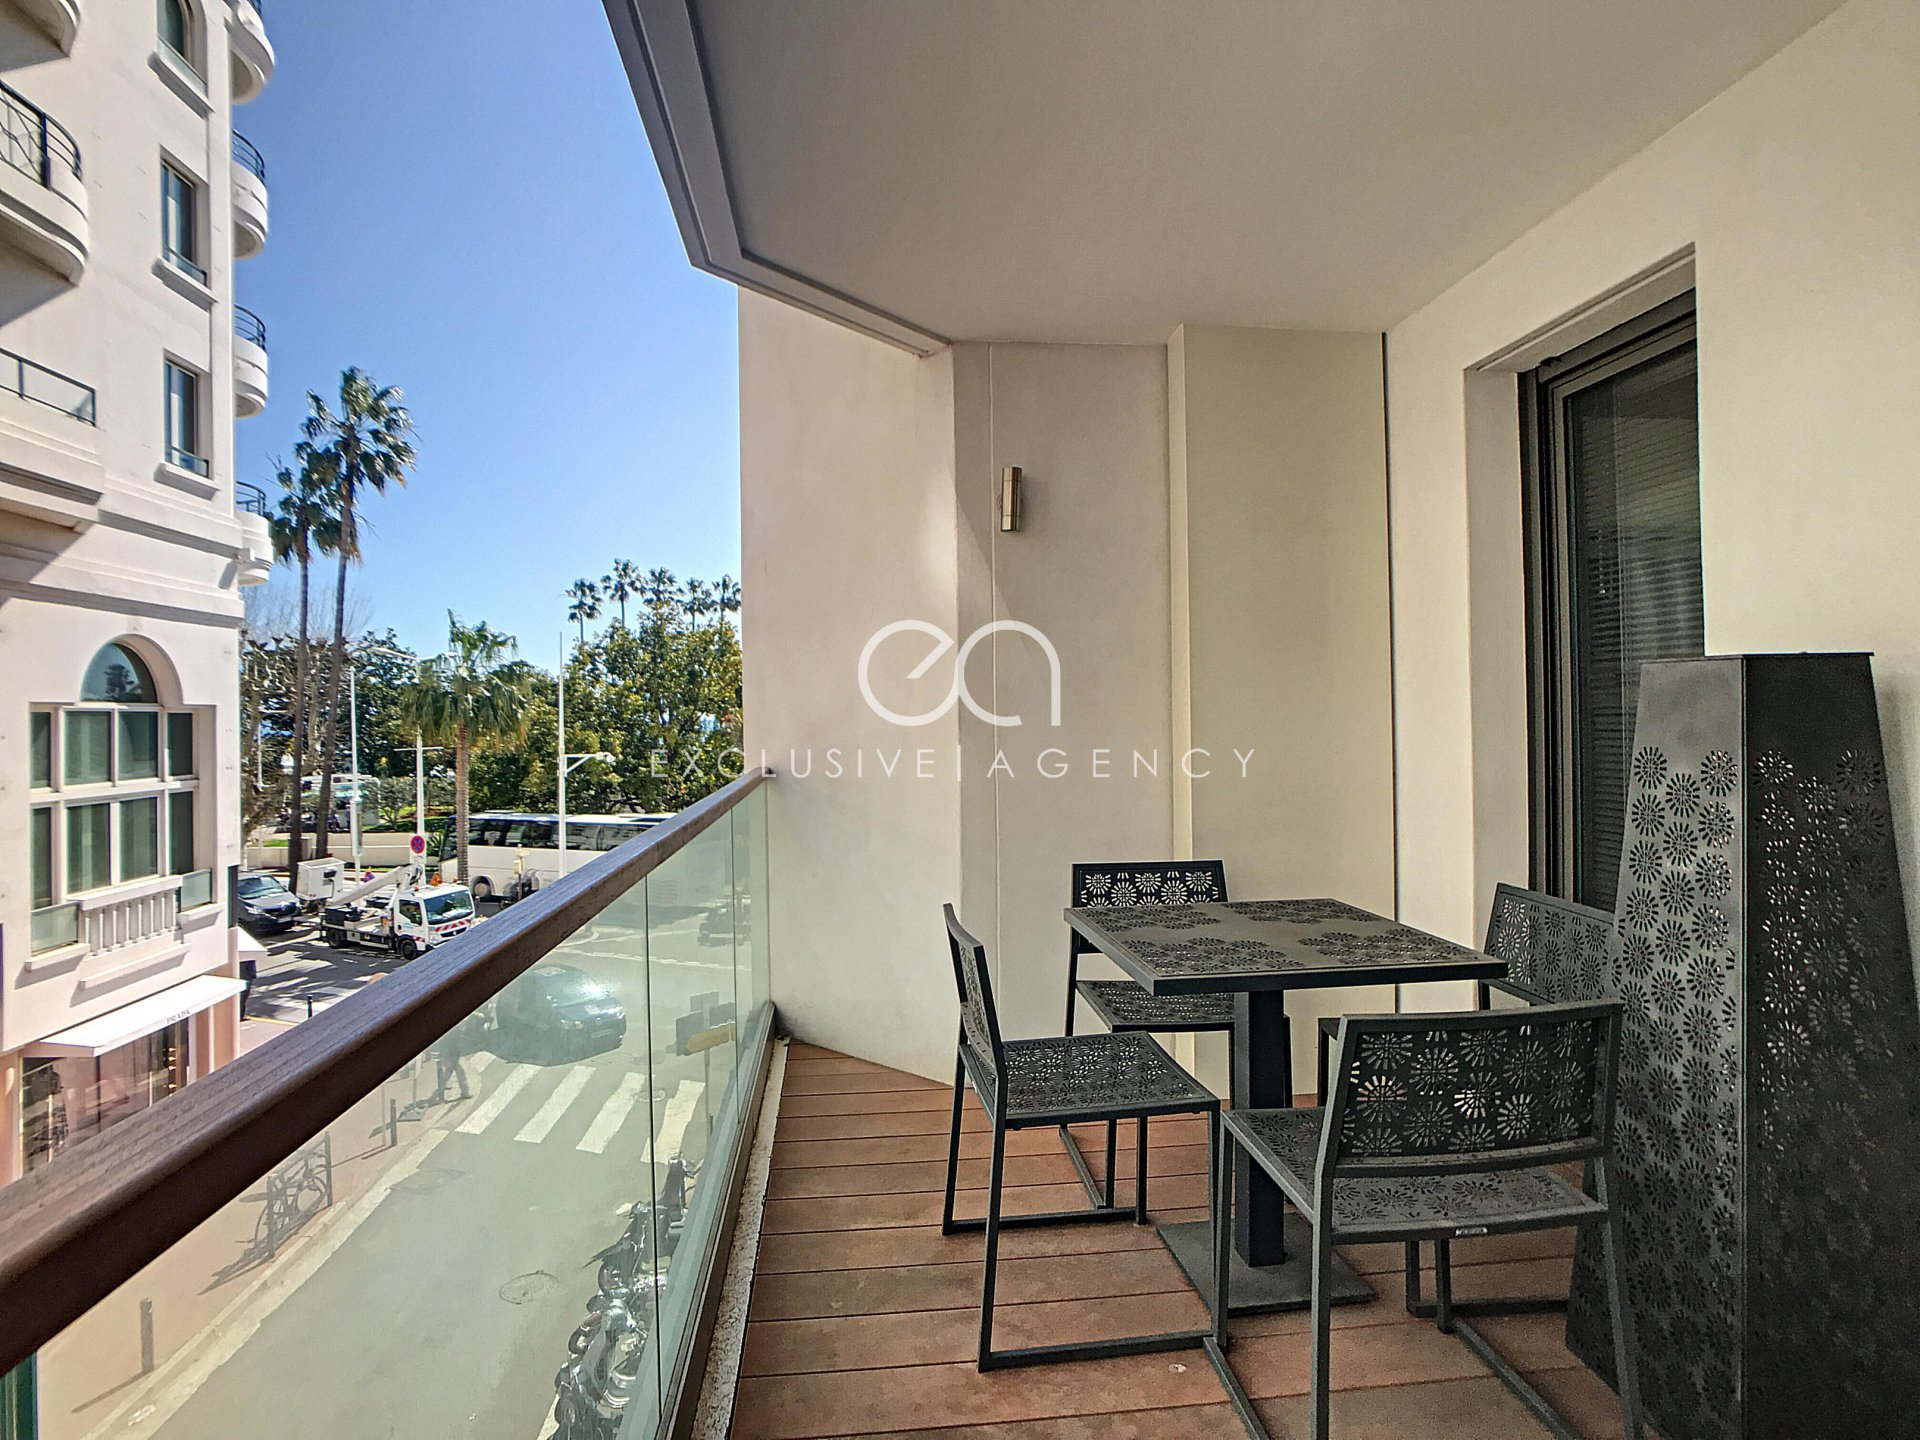 Cannes Croisette in front of Le Palais Des Festivals rental for congress and holiday 70m² 2 bedrooms apartment with 6m² terrace for 2 to 4 people.